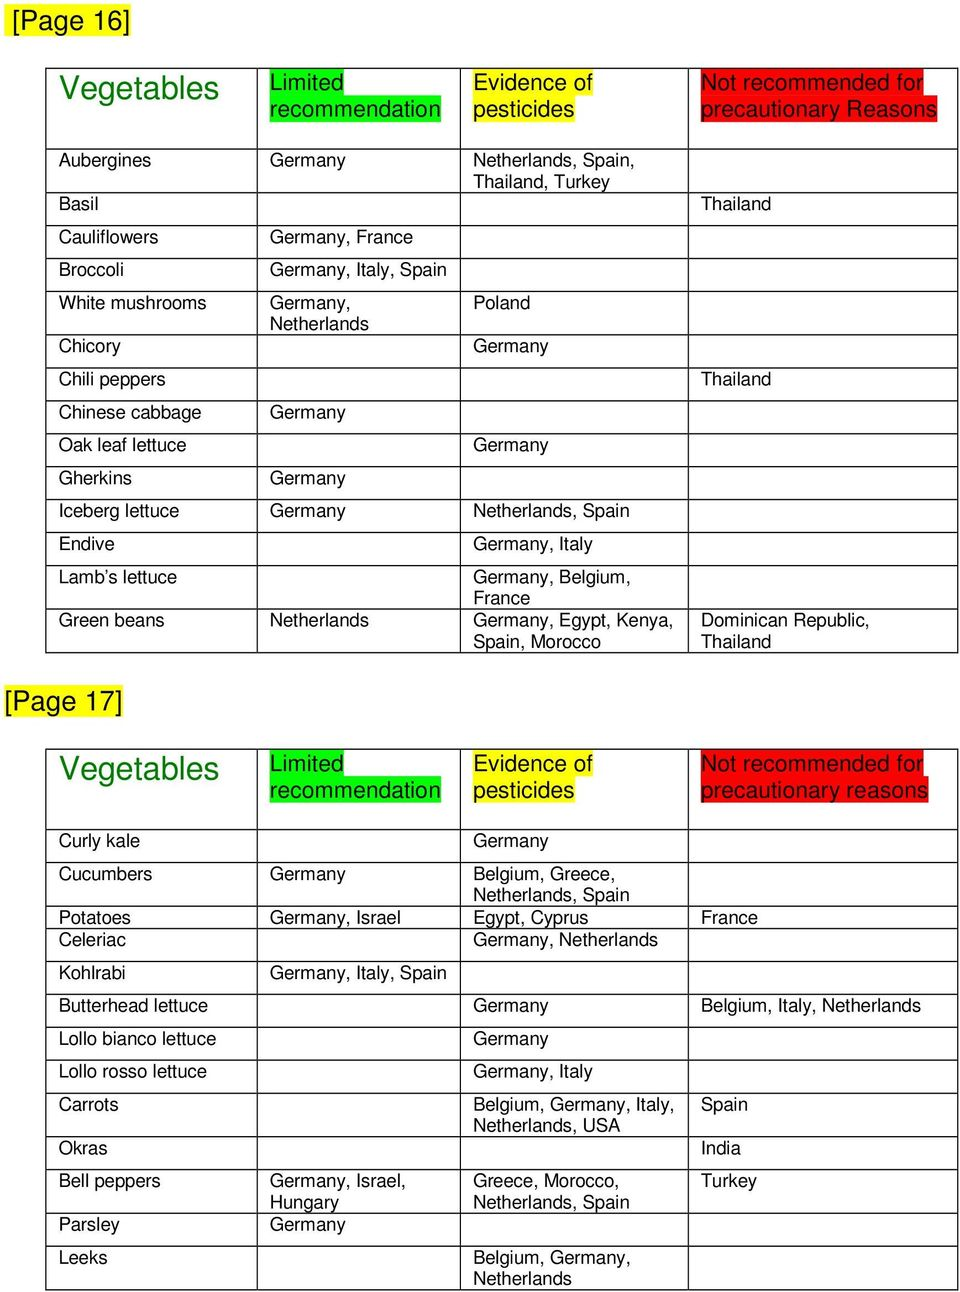 Green beans Netherlands, Egypt, Kenya, Spain, Morocco Thailand Thailand Dominican Republic, Thailand [Page 17] Vegetables Limited recommendation Evidence of pesticides Not recommended for